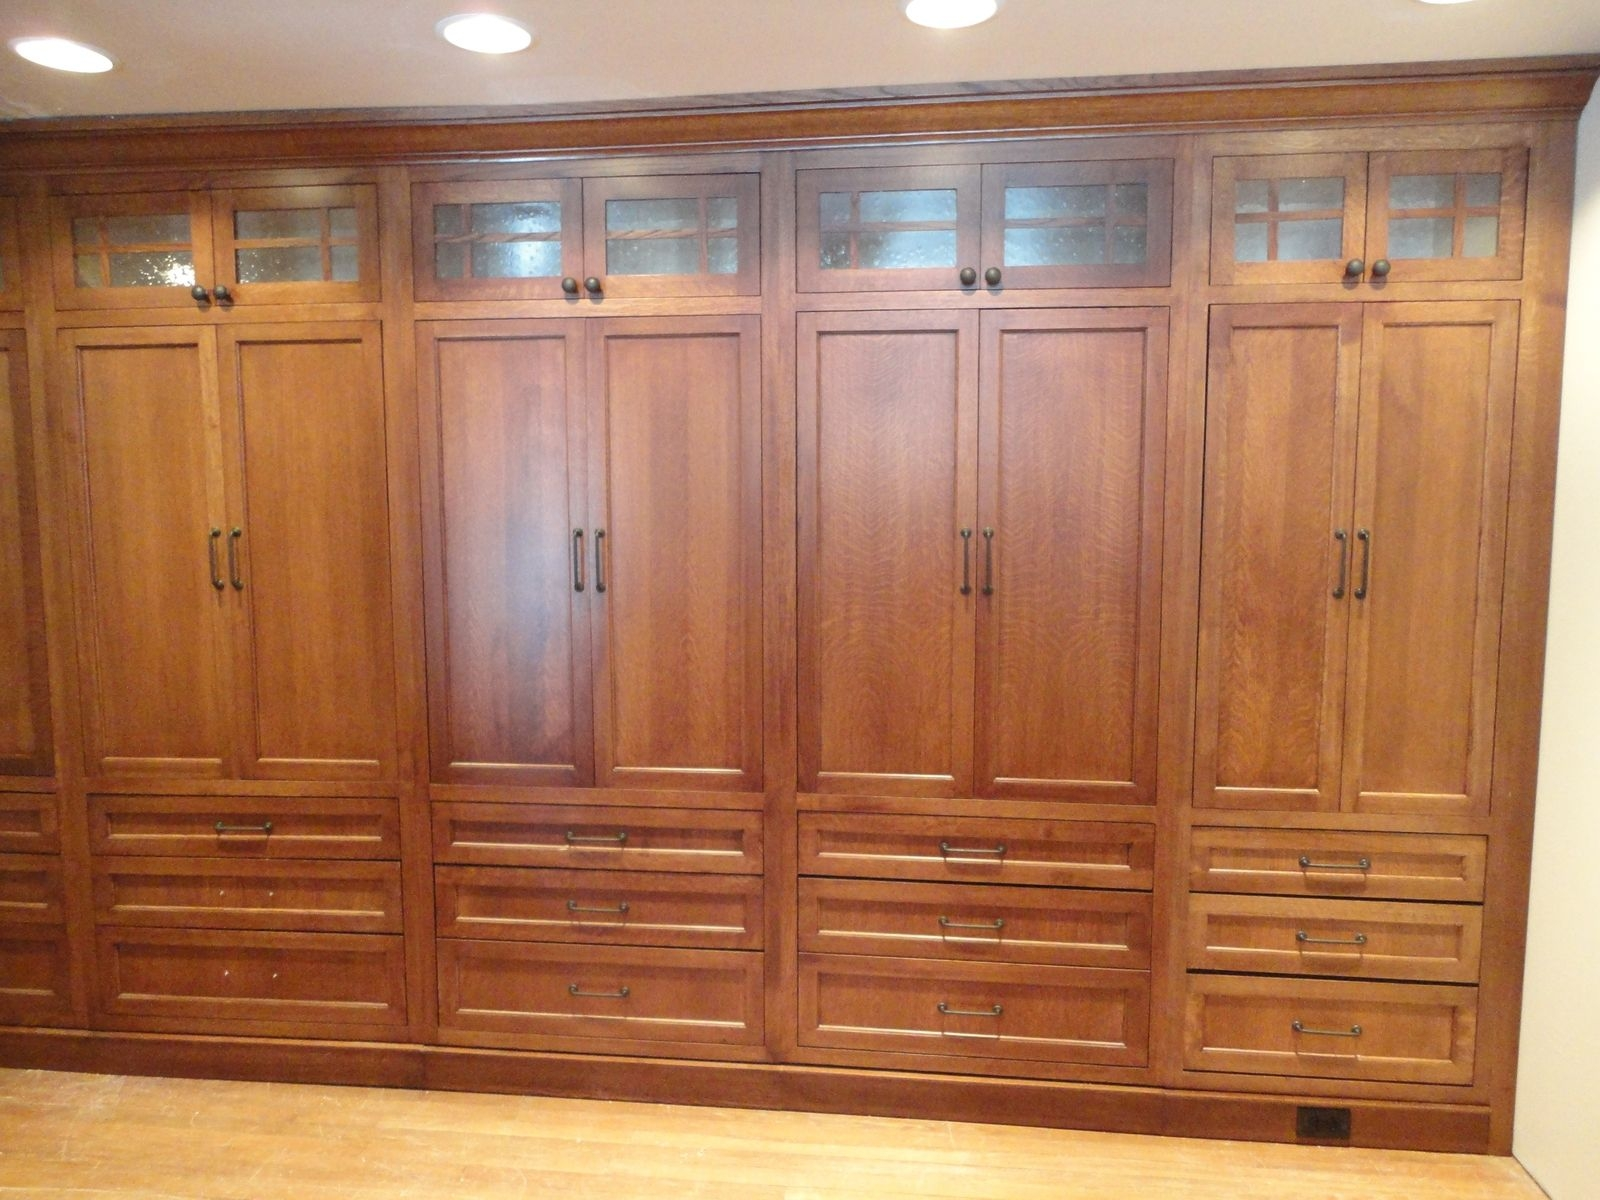 Closet Cabinets With Glass Doors